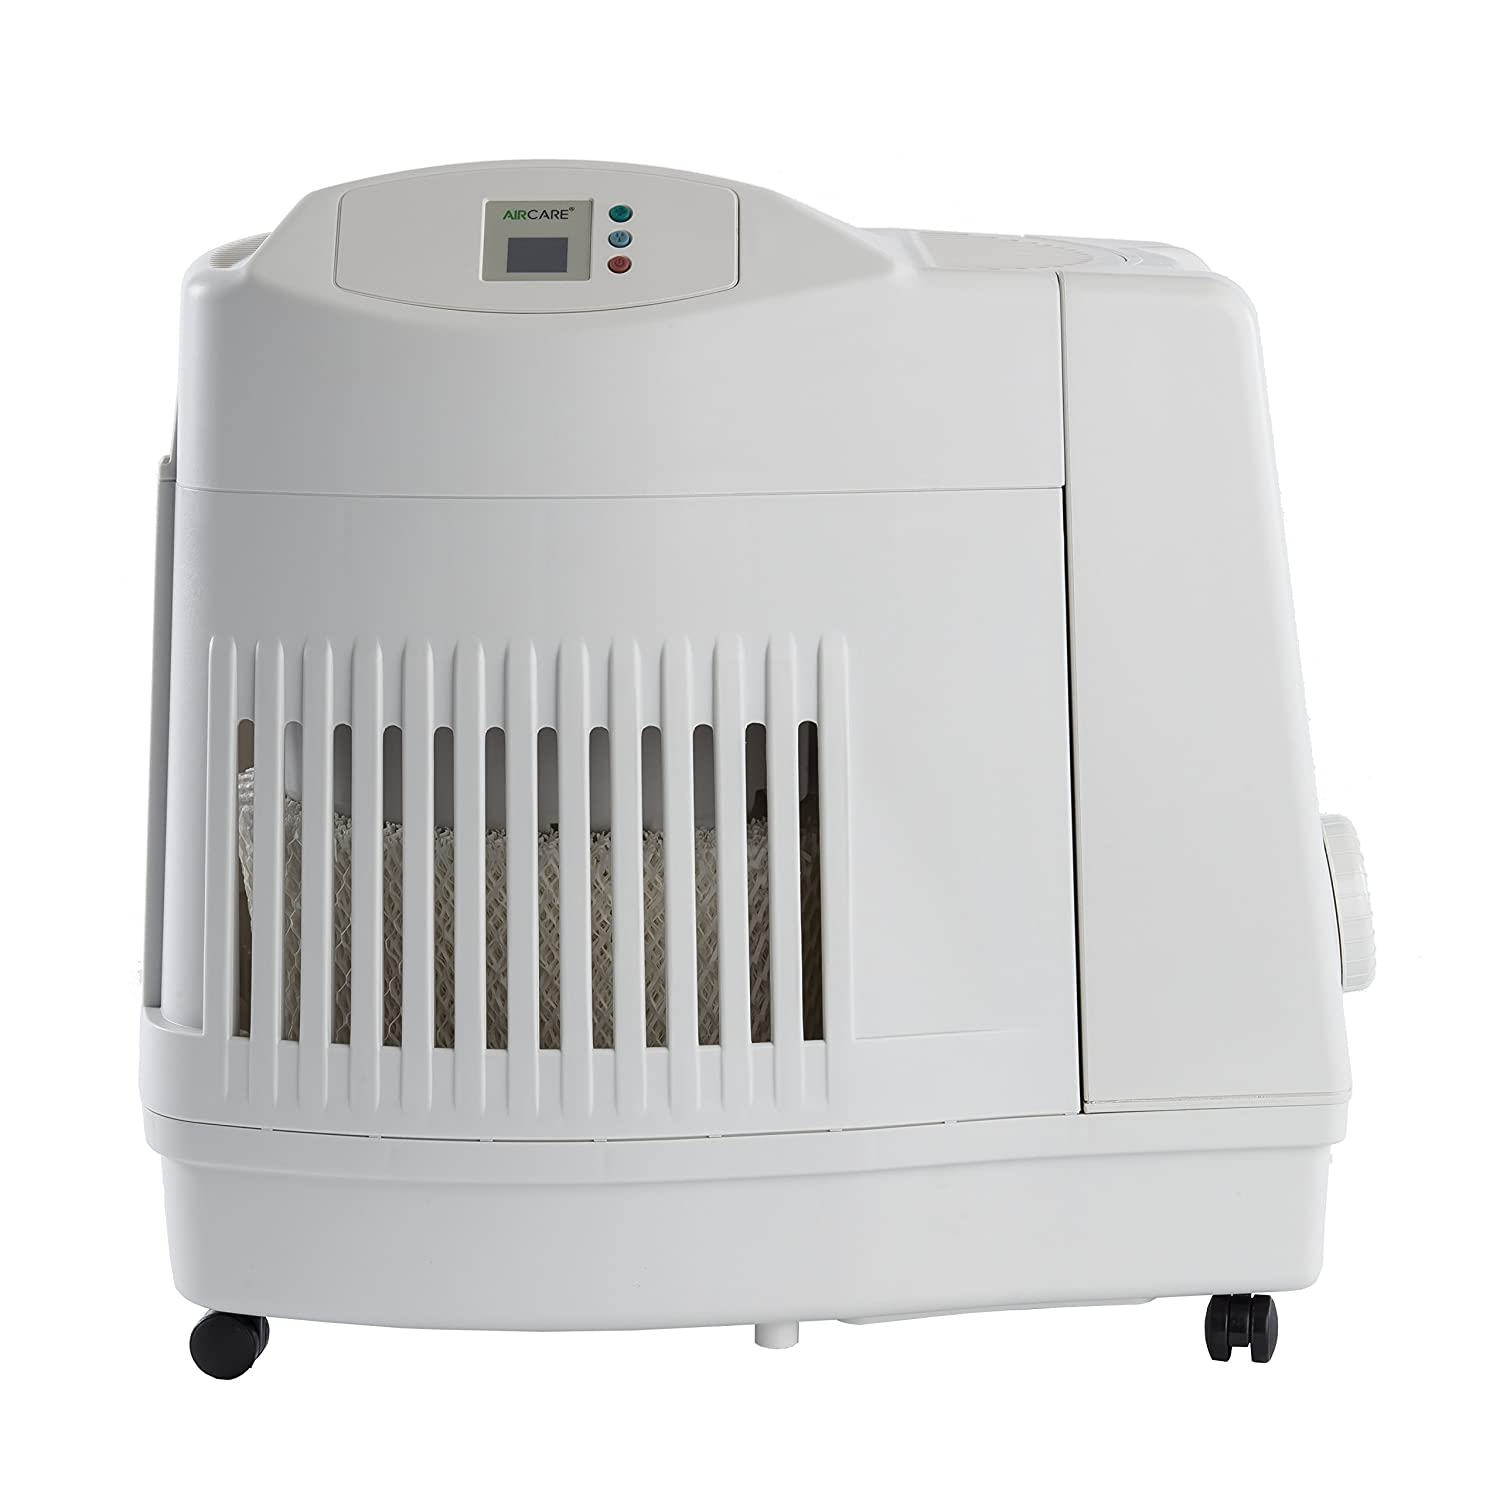 AIRCARE MA1201 Whole House Humidifier Review